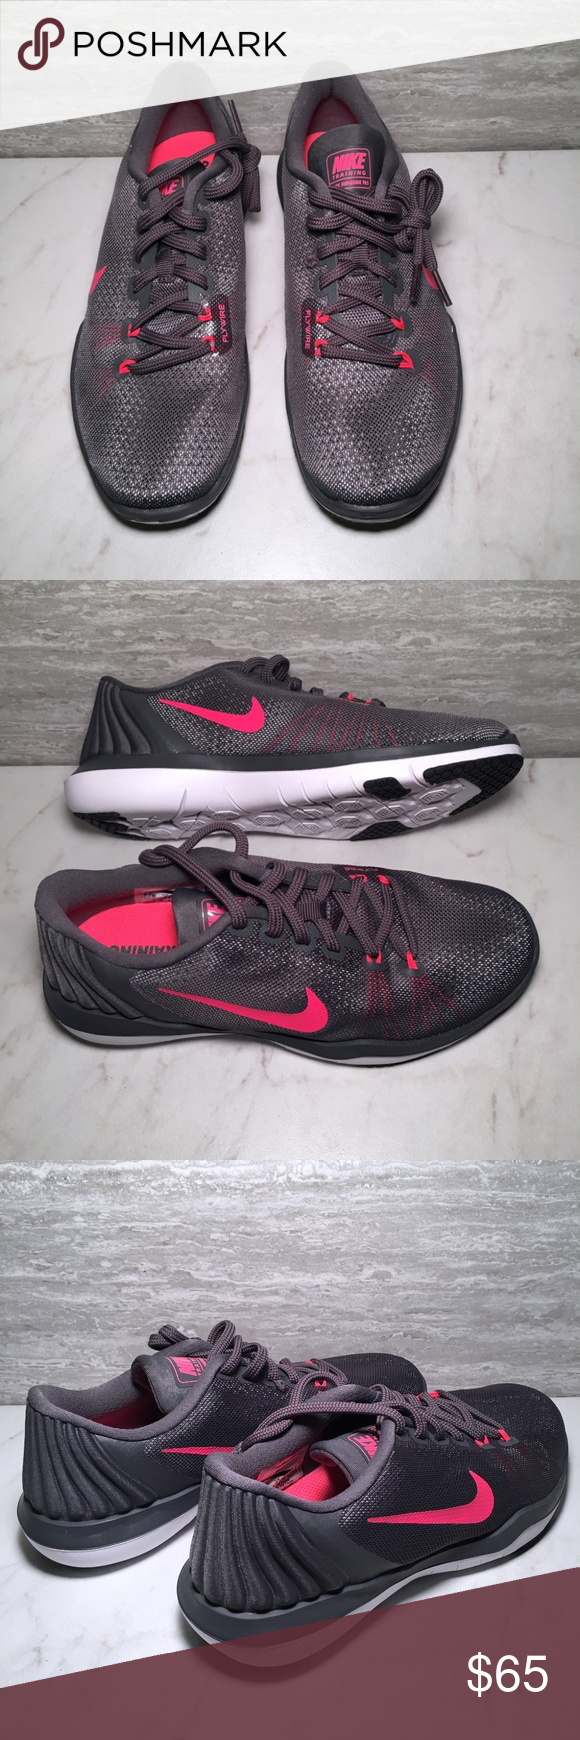 2f76c1eea905 Nike Flex Supreme TR5 Womens Training Shoe Sz 6.5. Dark Grey   Pink Punch.  New without box. Nike Shoes Athletic Shoes